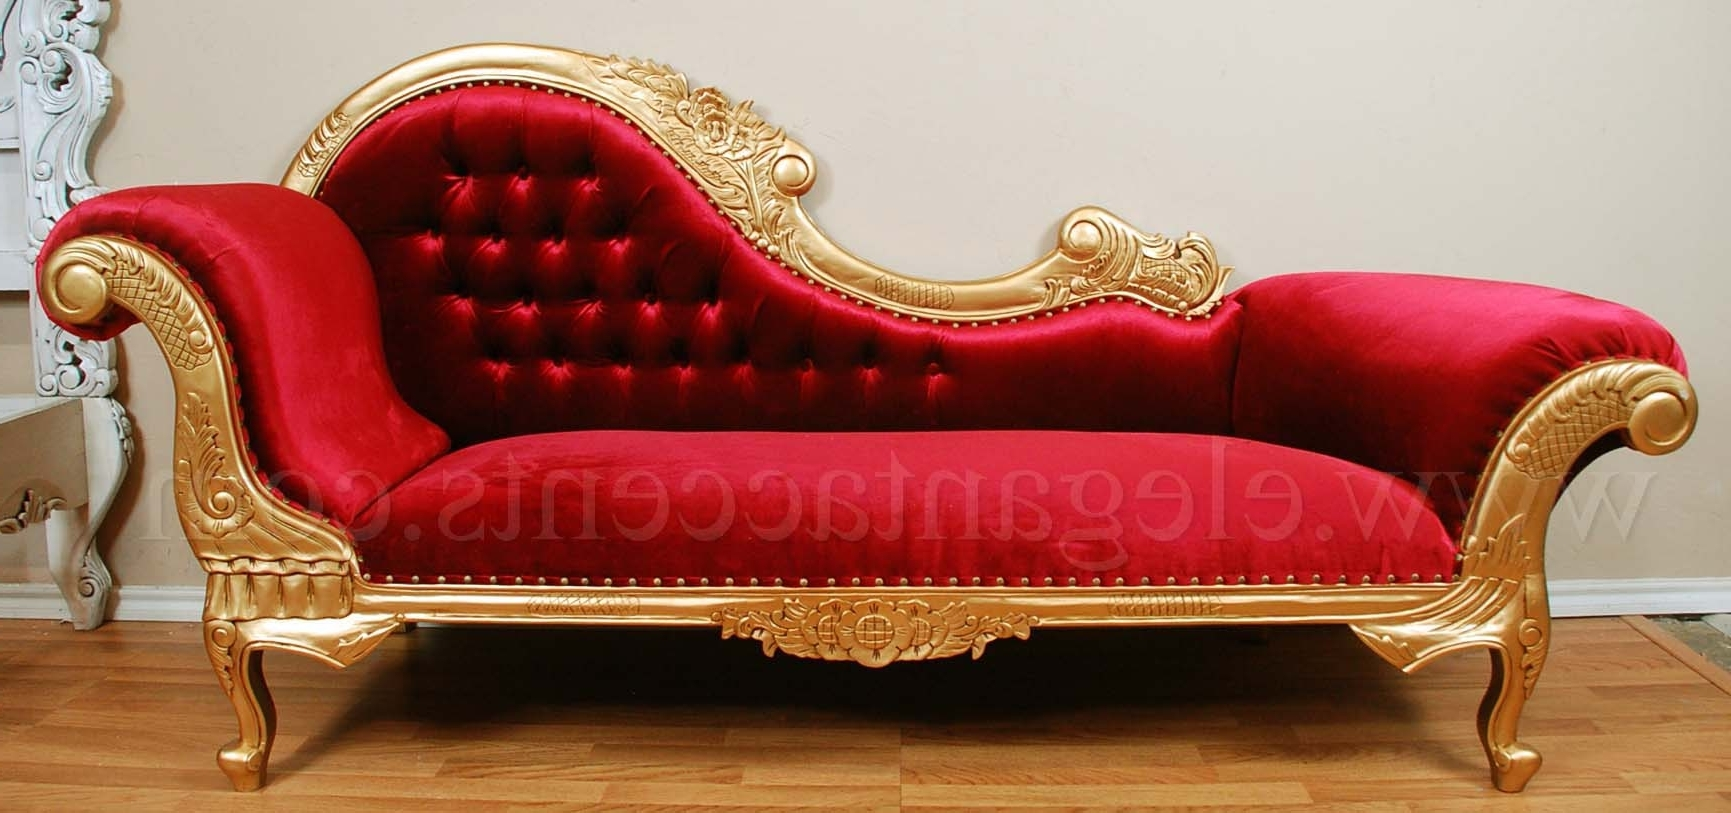 Victorian Chaise Lounge Chairs Pertaining To Popular Inspiring Red Victorian Chaise Lounge Pics Decoration Ideas (View 8 of 15)